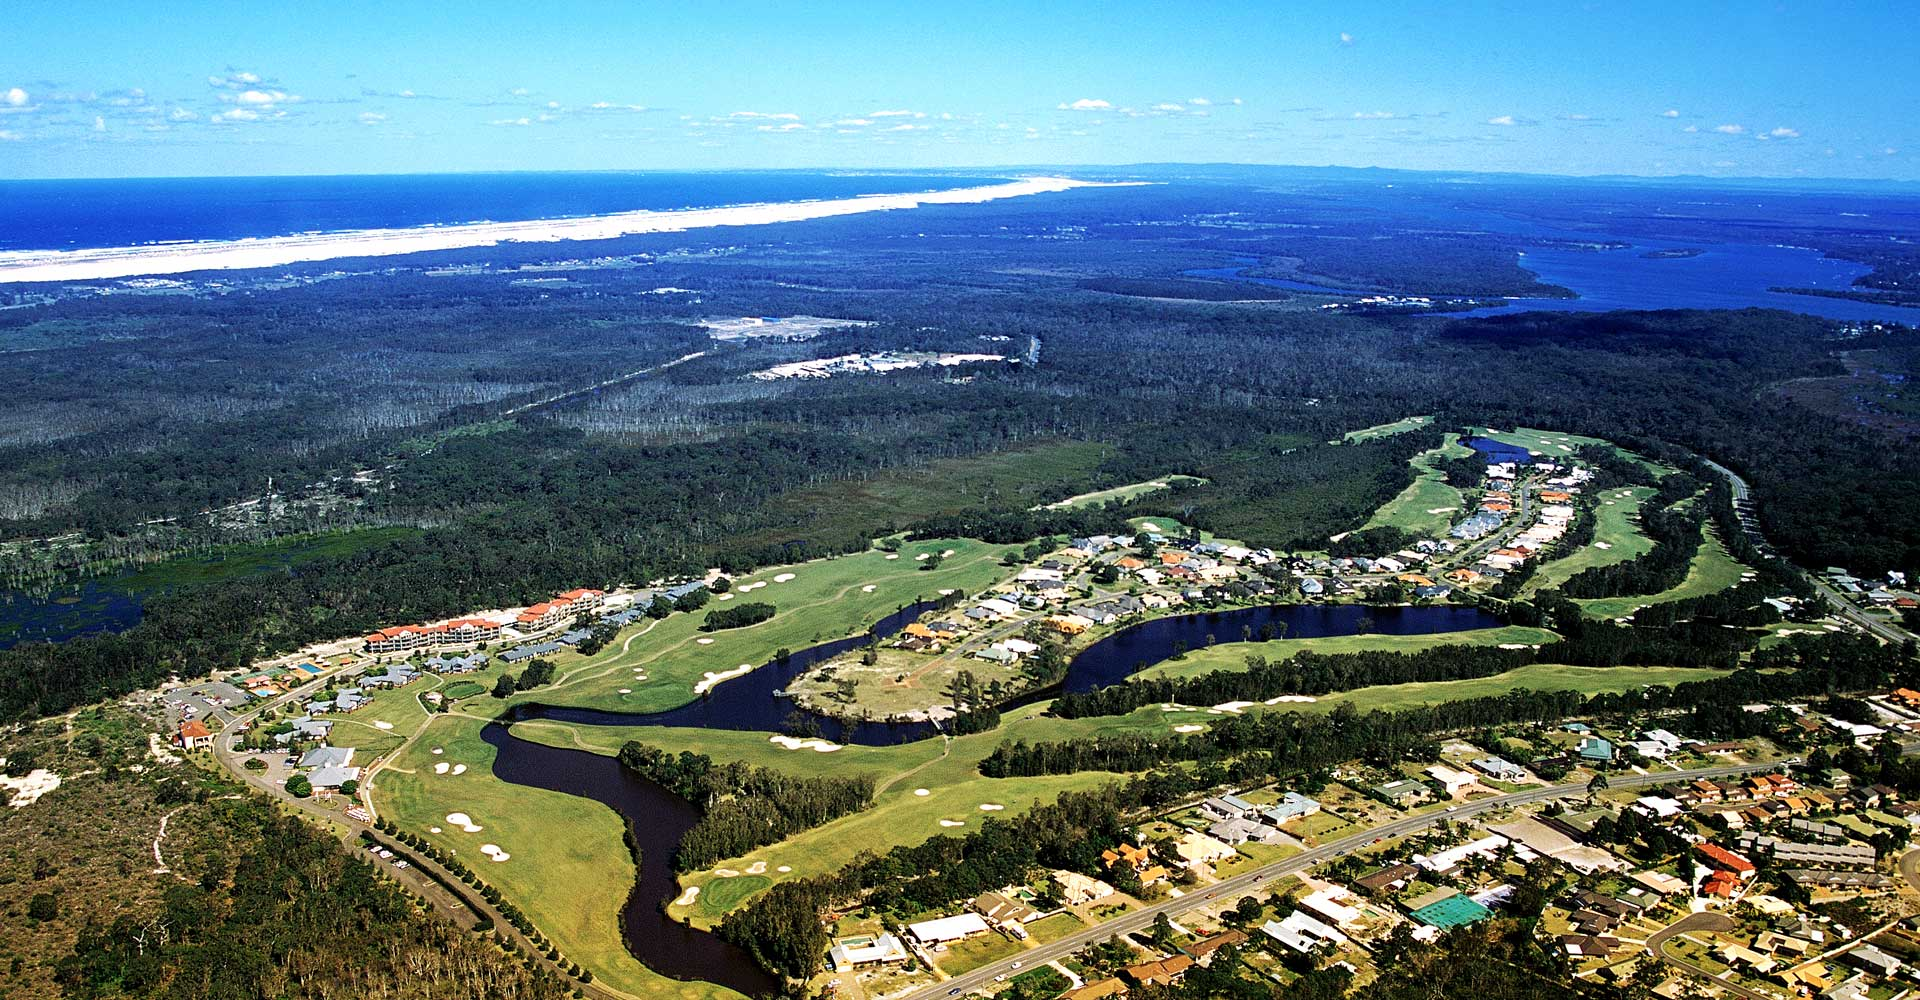 Aerial view over Horizons Golf Resort